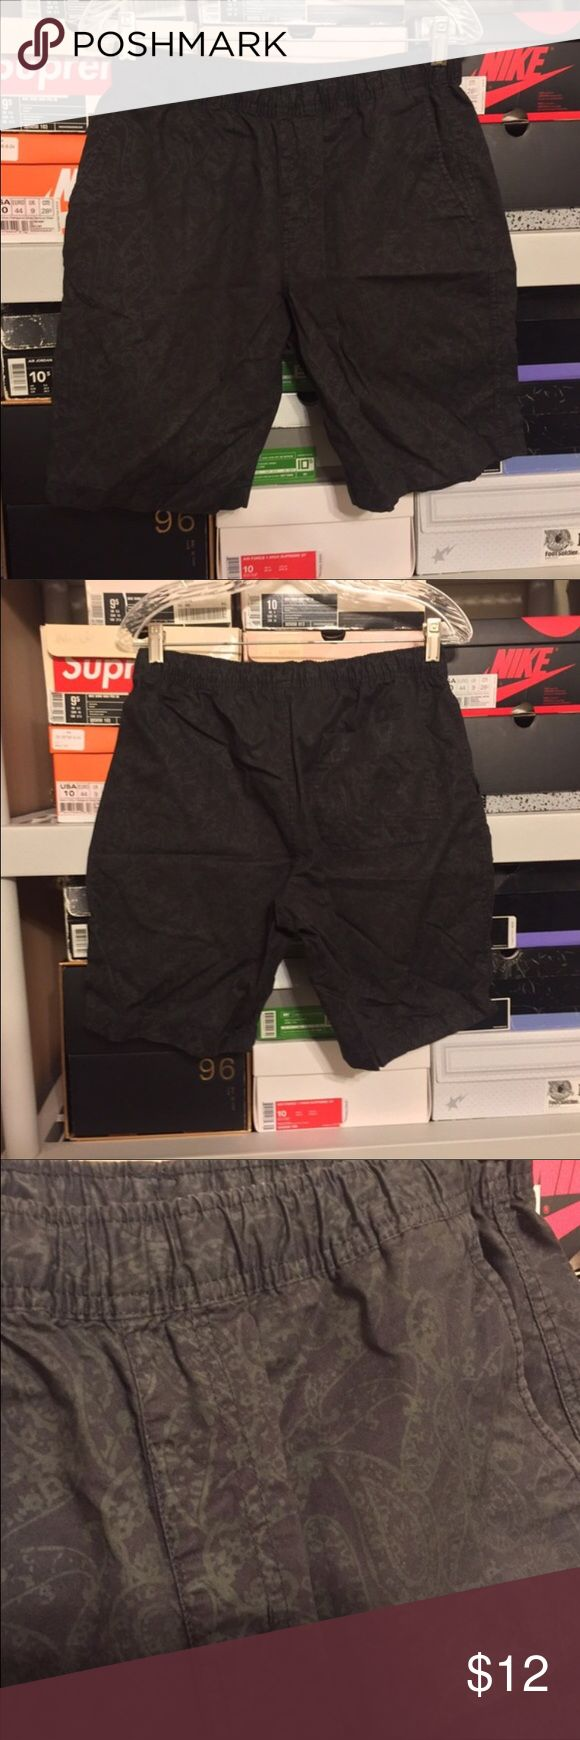 Mens Uniqlo Black Paisley Adjustable Shorts size M Men's Uniqlo black paisley adjustable pull up shorts    These shorts are preowned but in good condition just has slight fading and wrinkles from storage!  Size Medium (30-33) Uniqlo Shorts